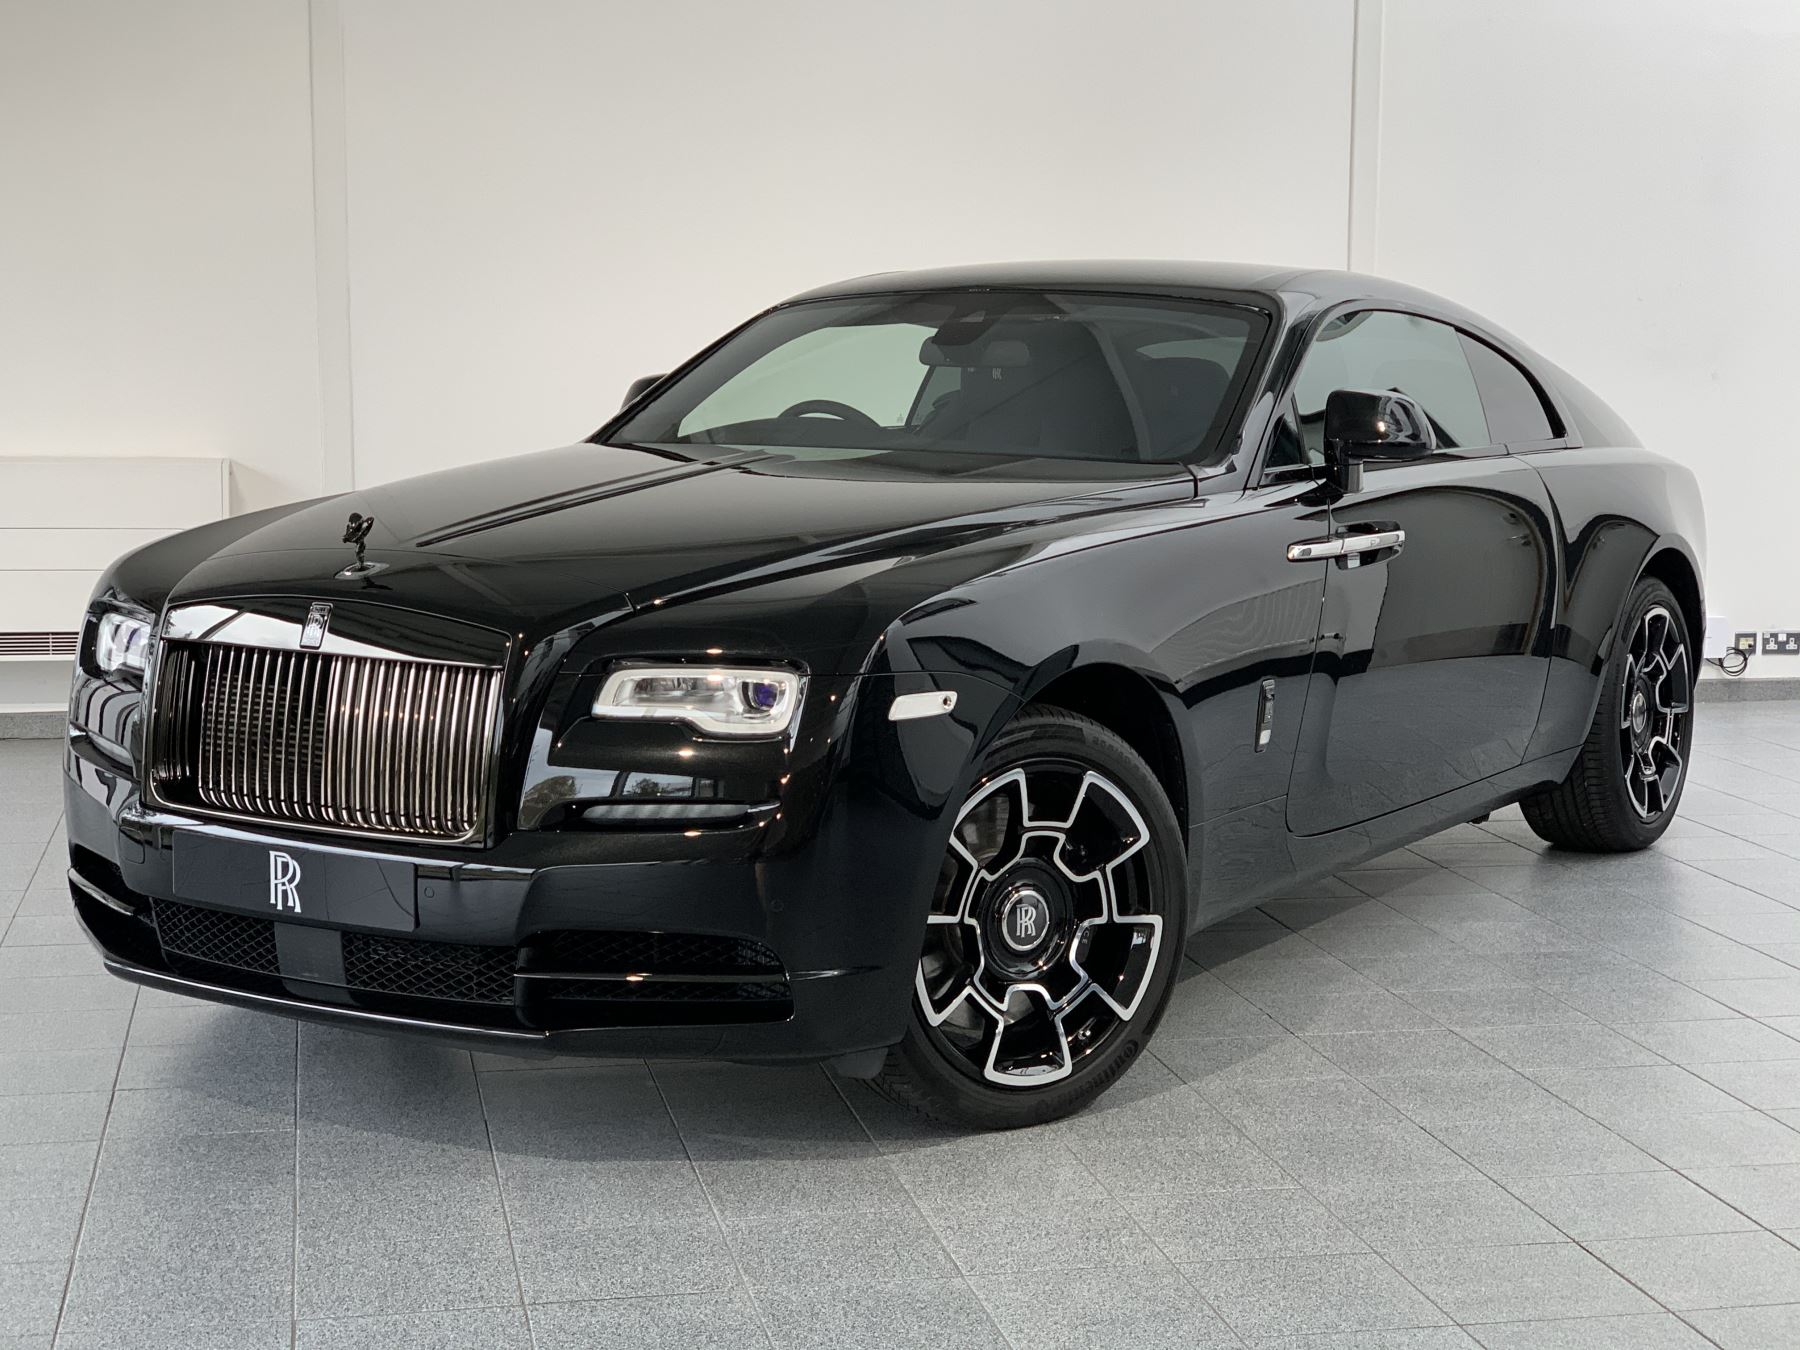 Rolls-Royce Black Badge Wraith Black Badge 2dr Auto 6.6 Automatic Coupe (2020)